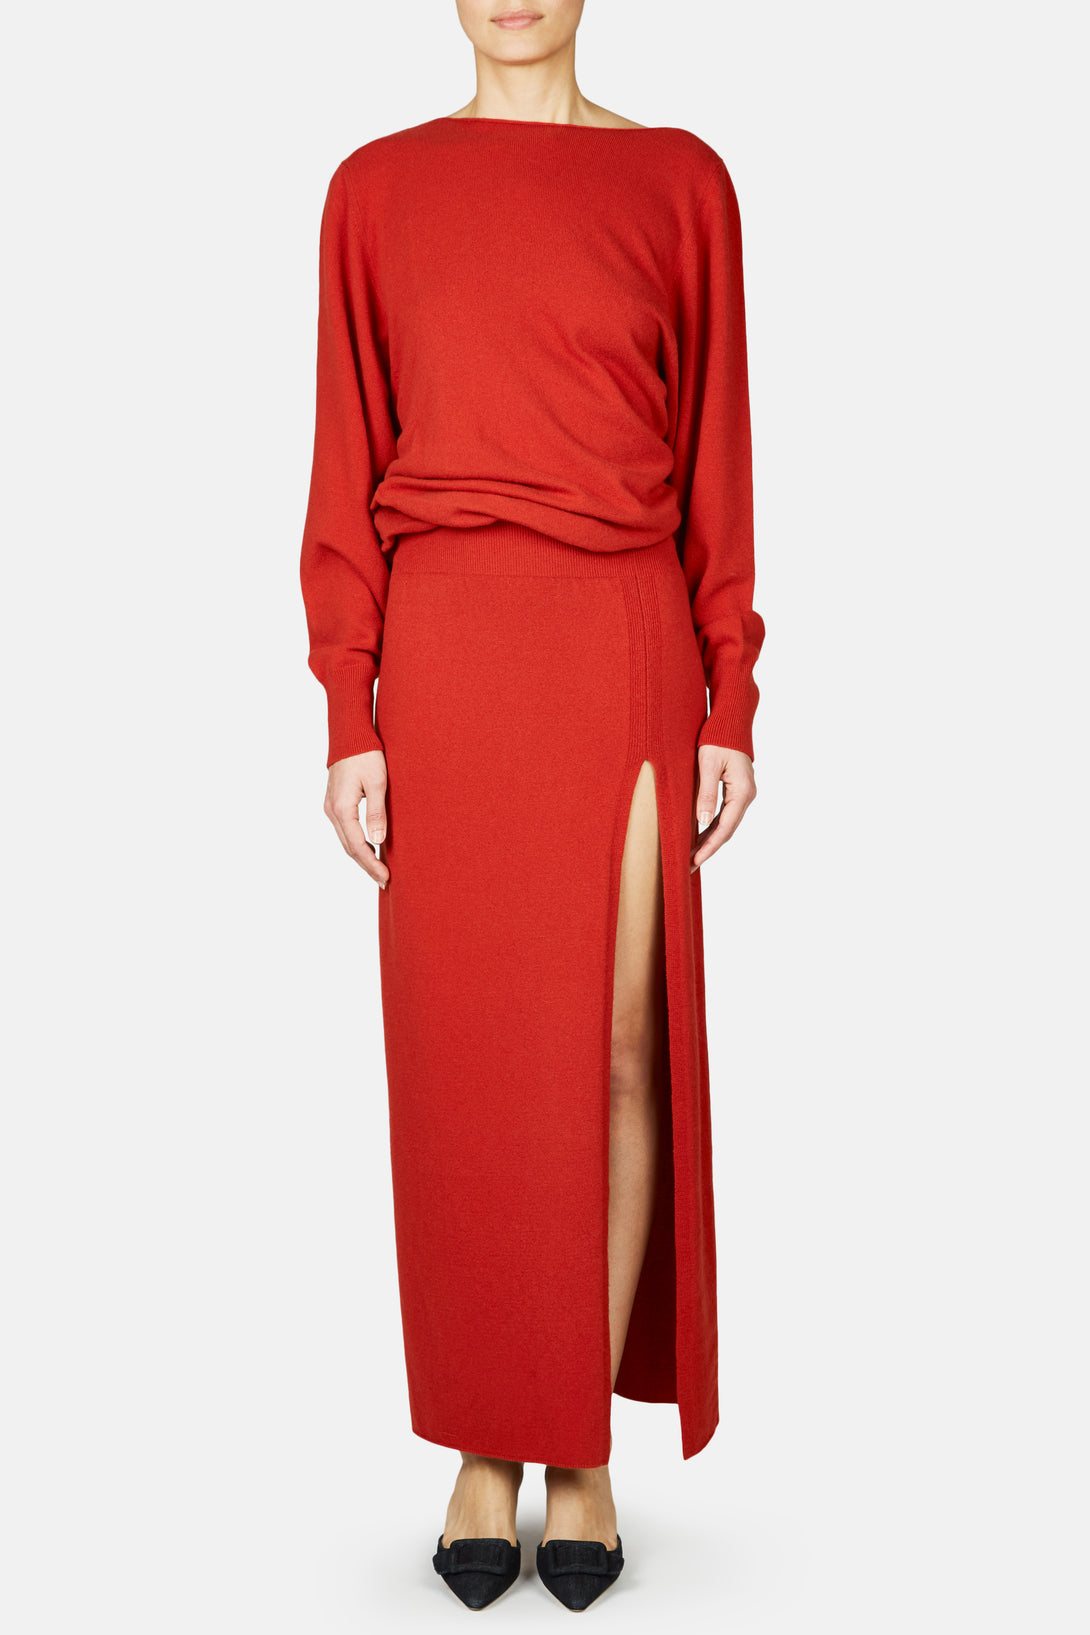 La Robe Jemaa Long Knit Dress - Red